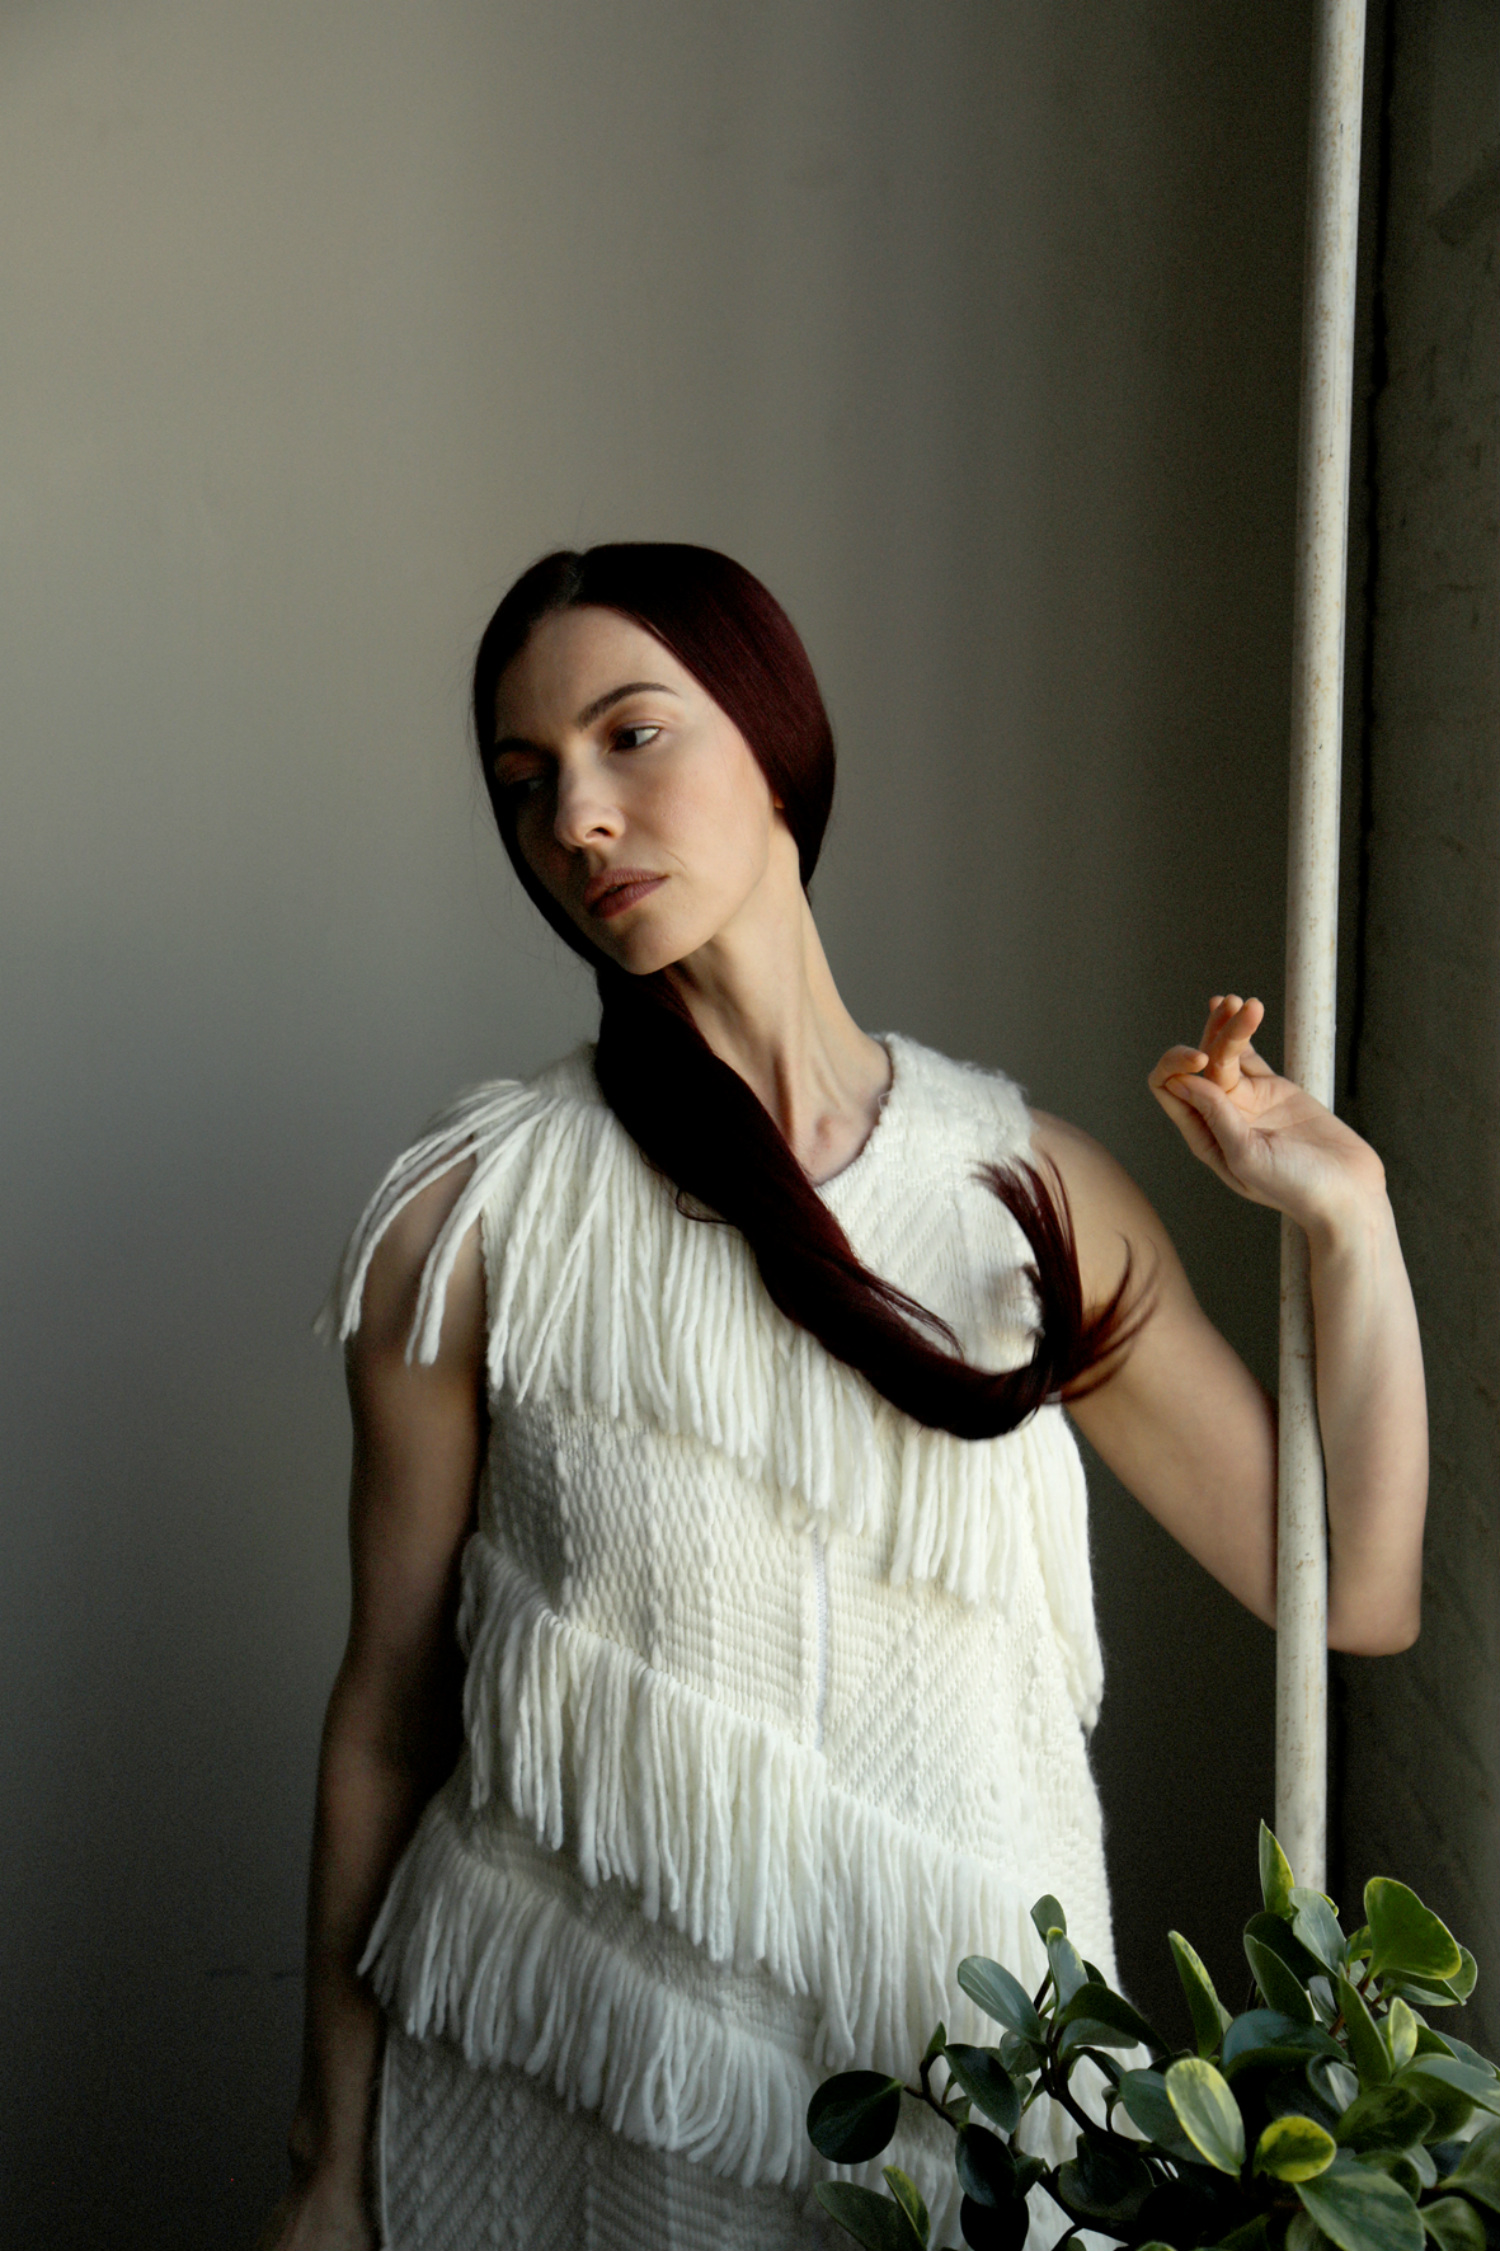 CHRYSTA BELL EDITORIAL PHOTOGRAPHY RODERICK AICHINGER TWIN PEAKS